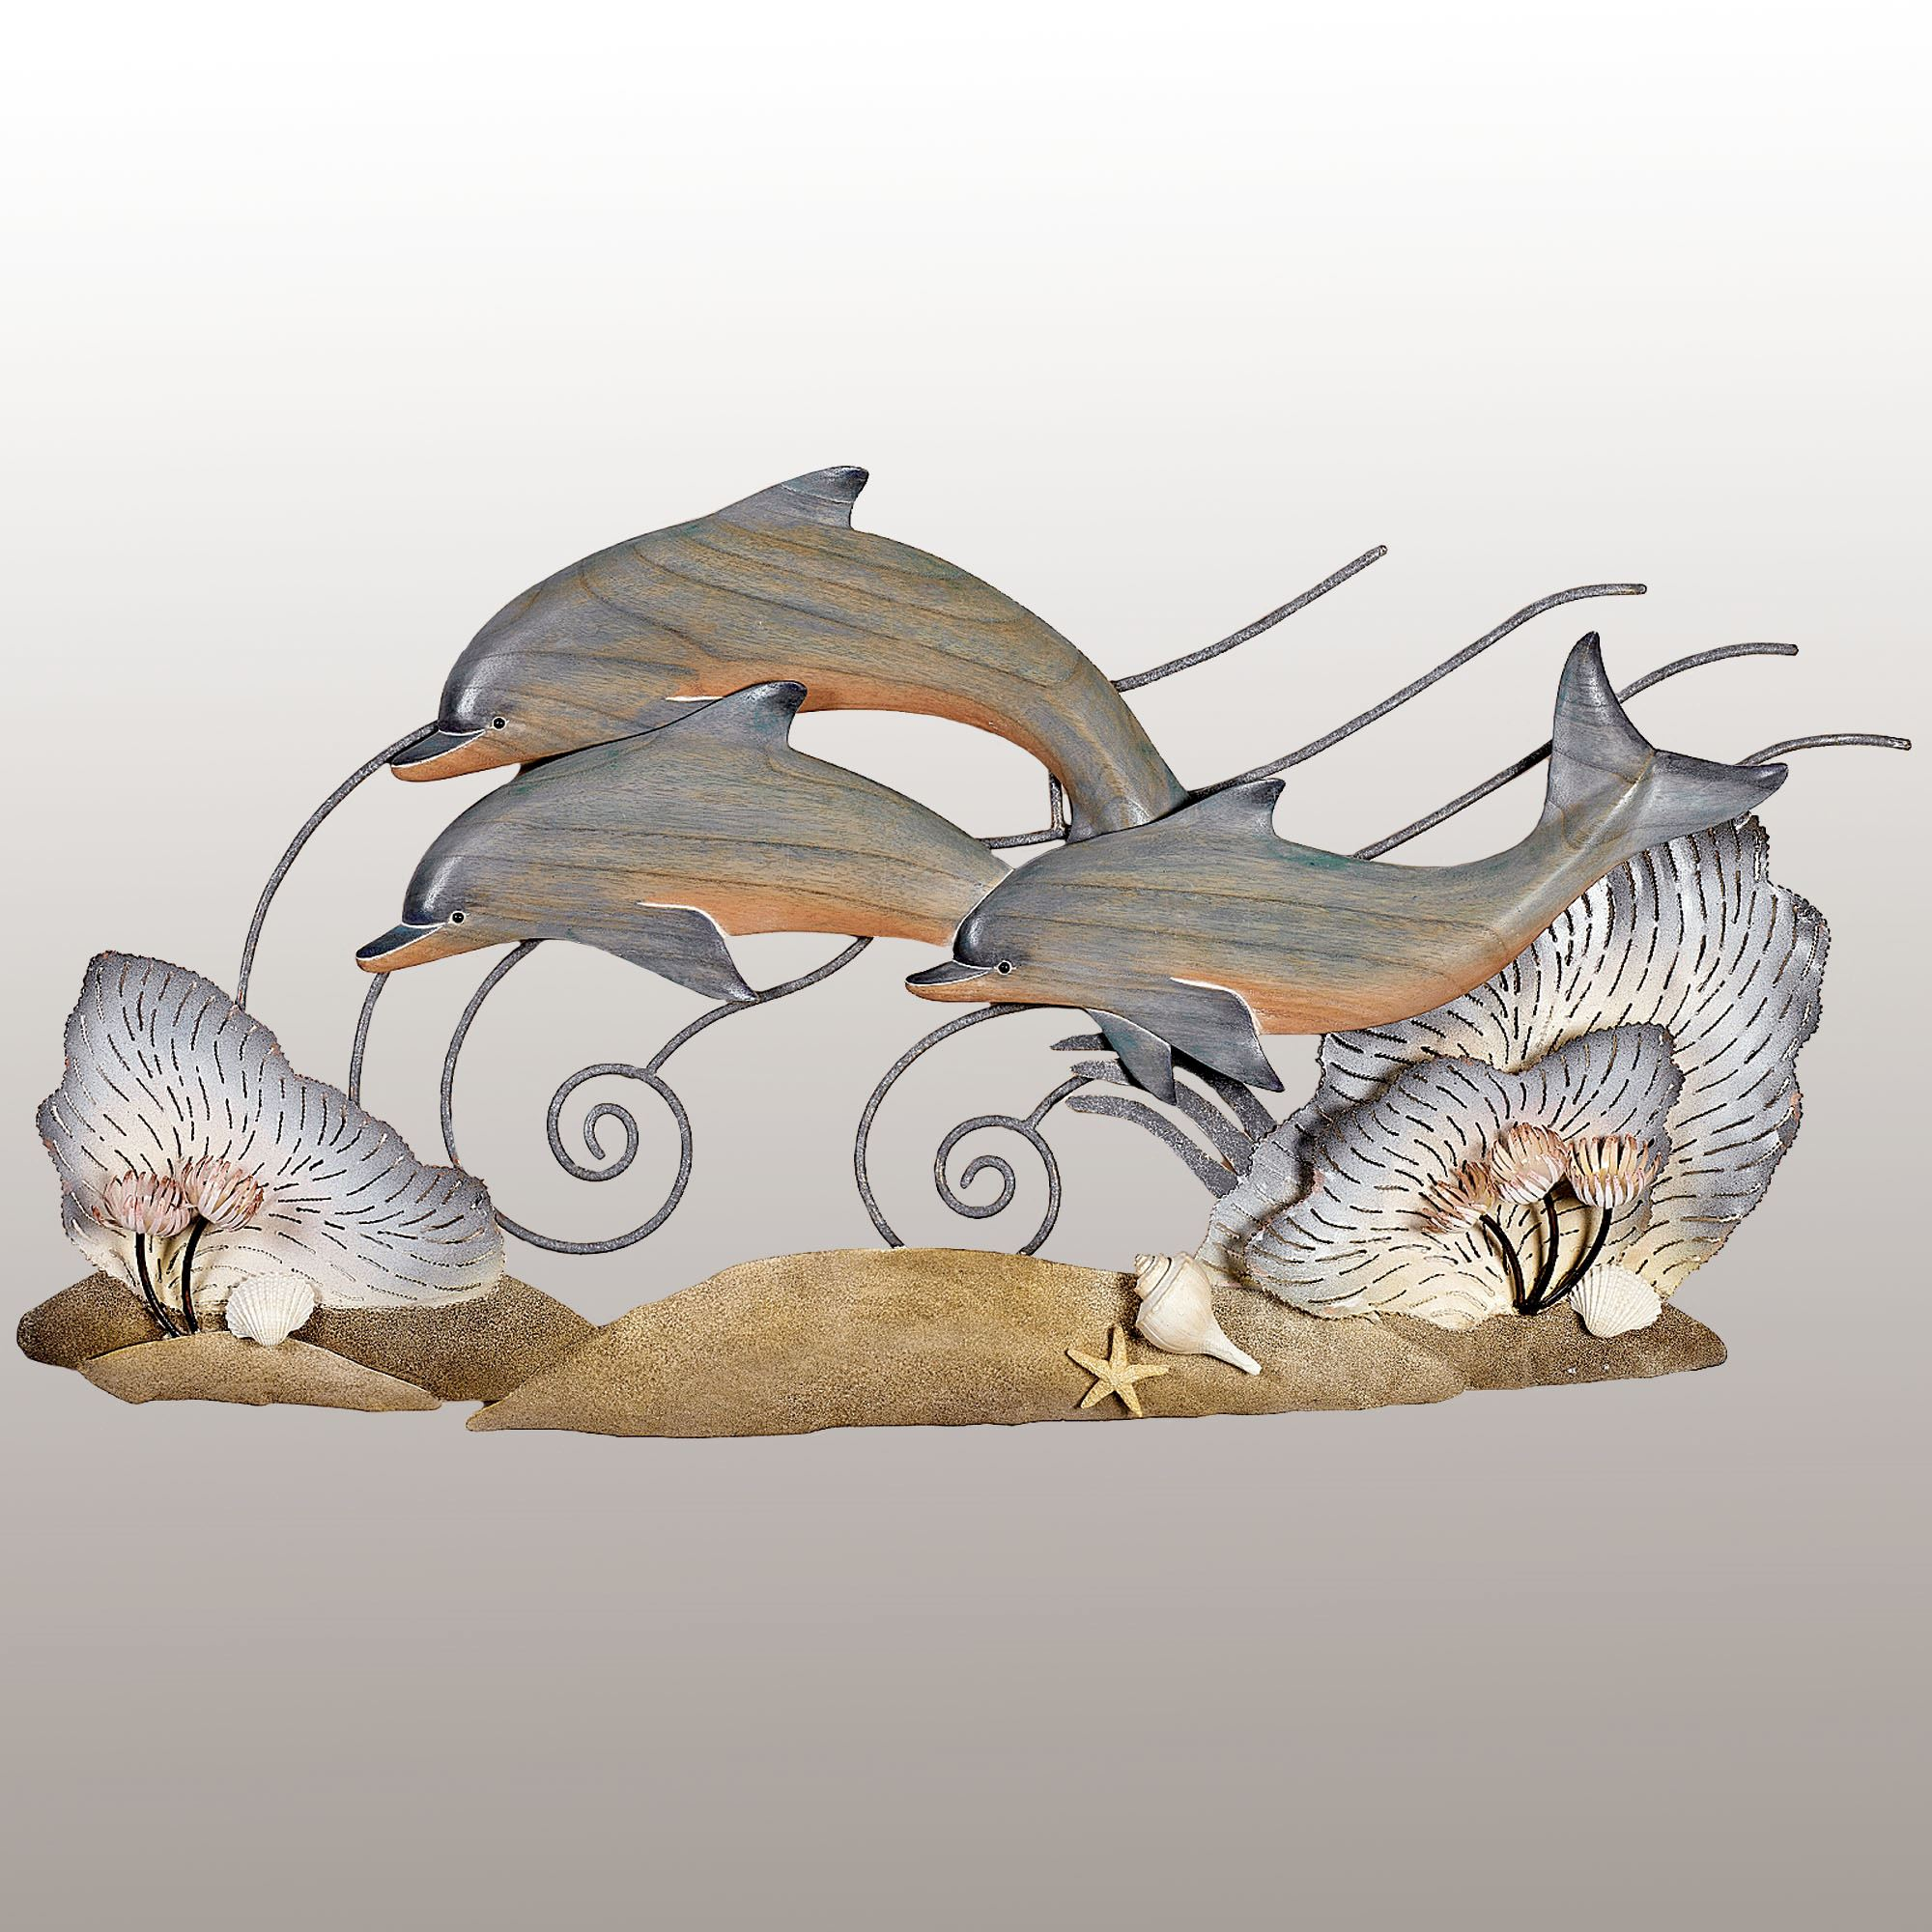 Soaring High Dolphins Wall Sculpture